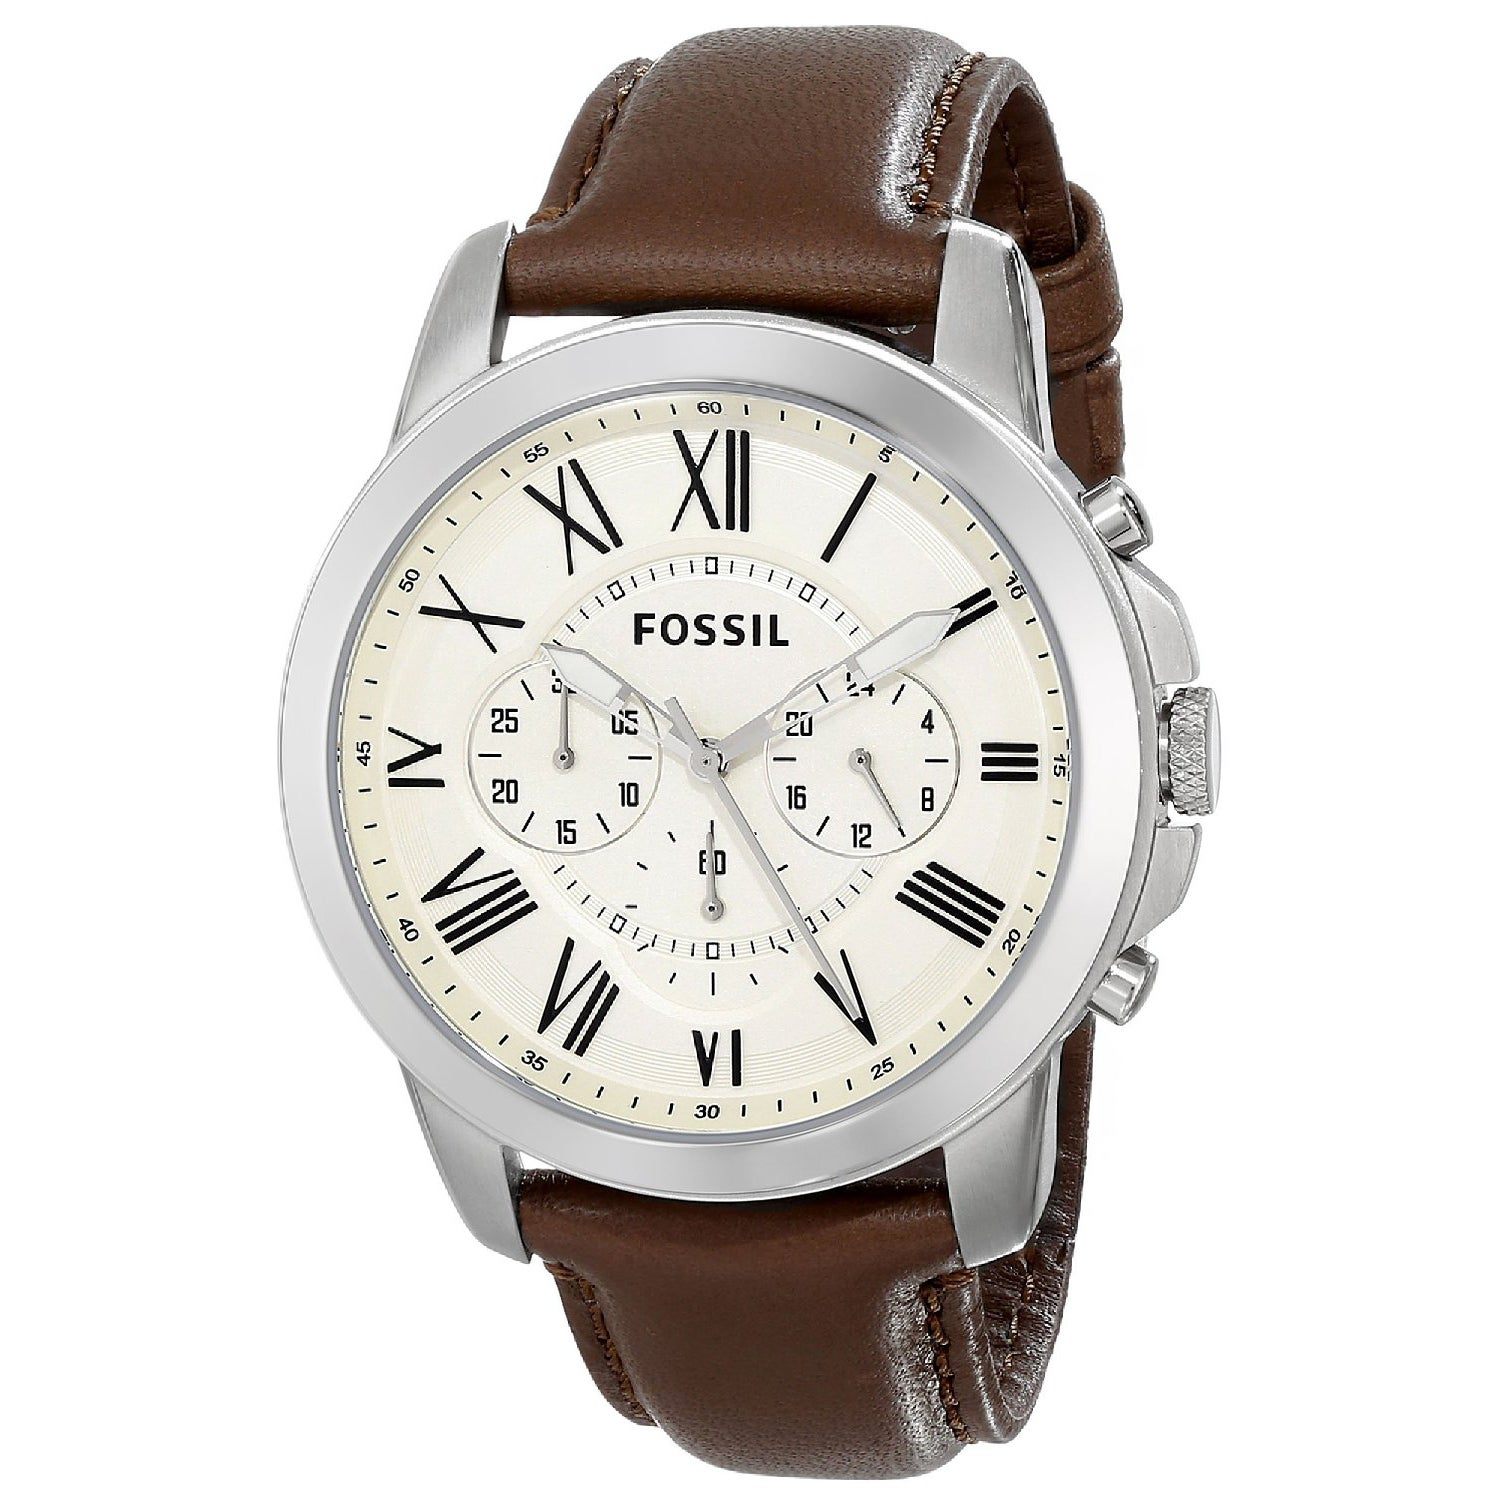 Fossil Men's FS4735 Grant Chronograph Leather Watch, Brow...